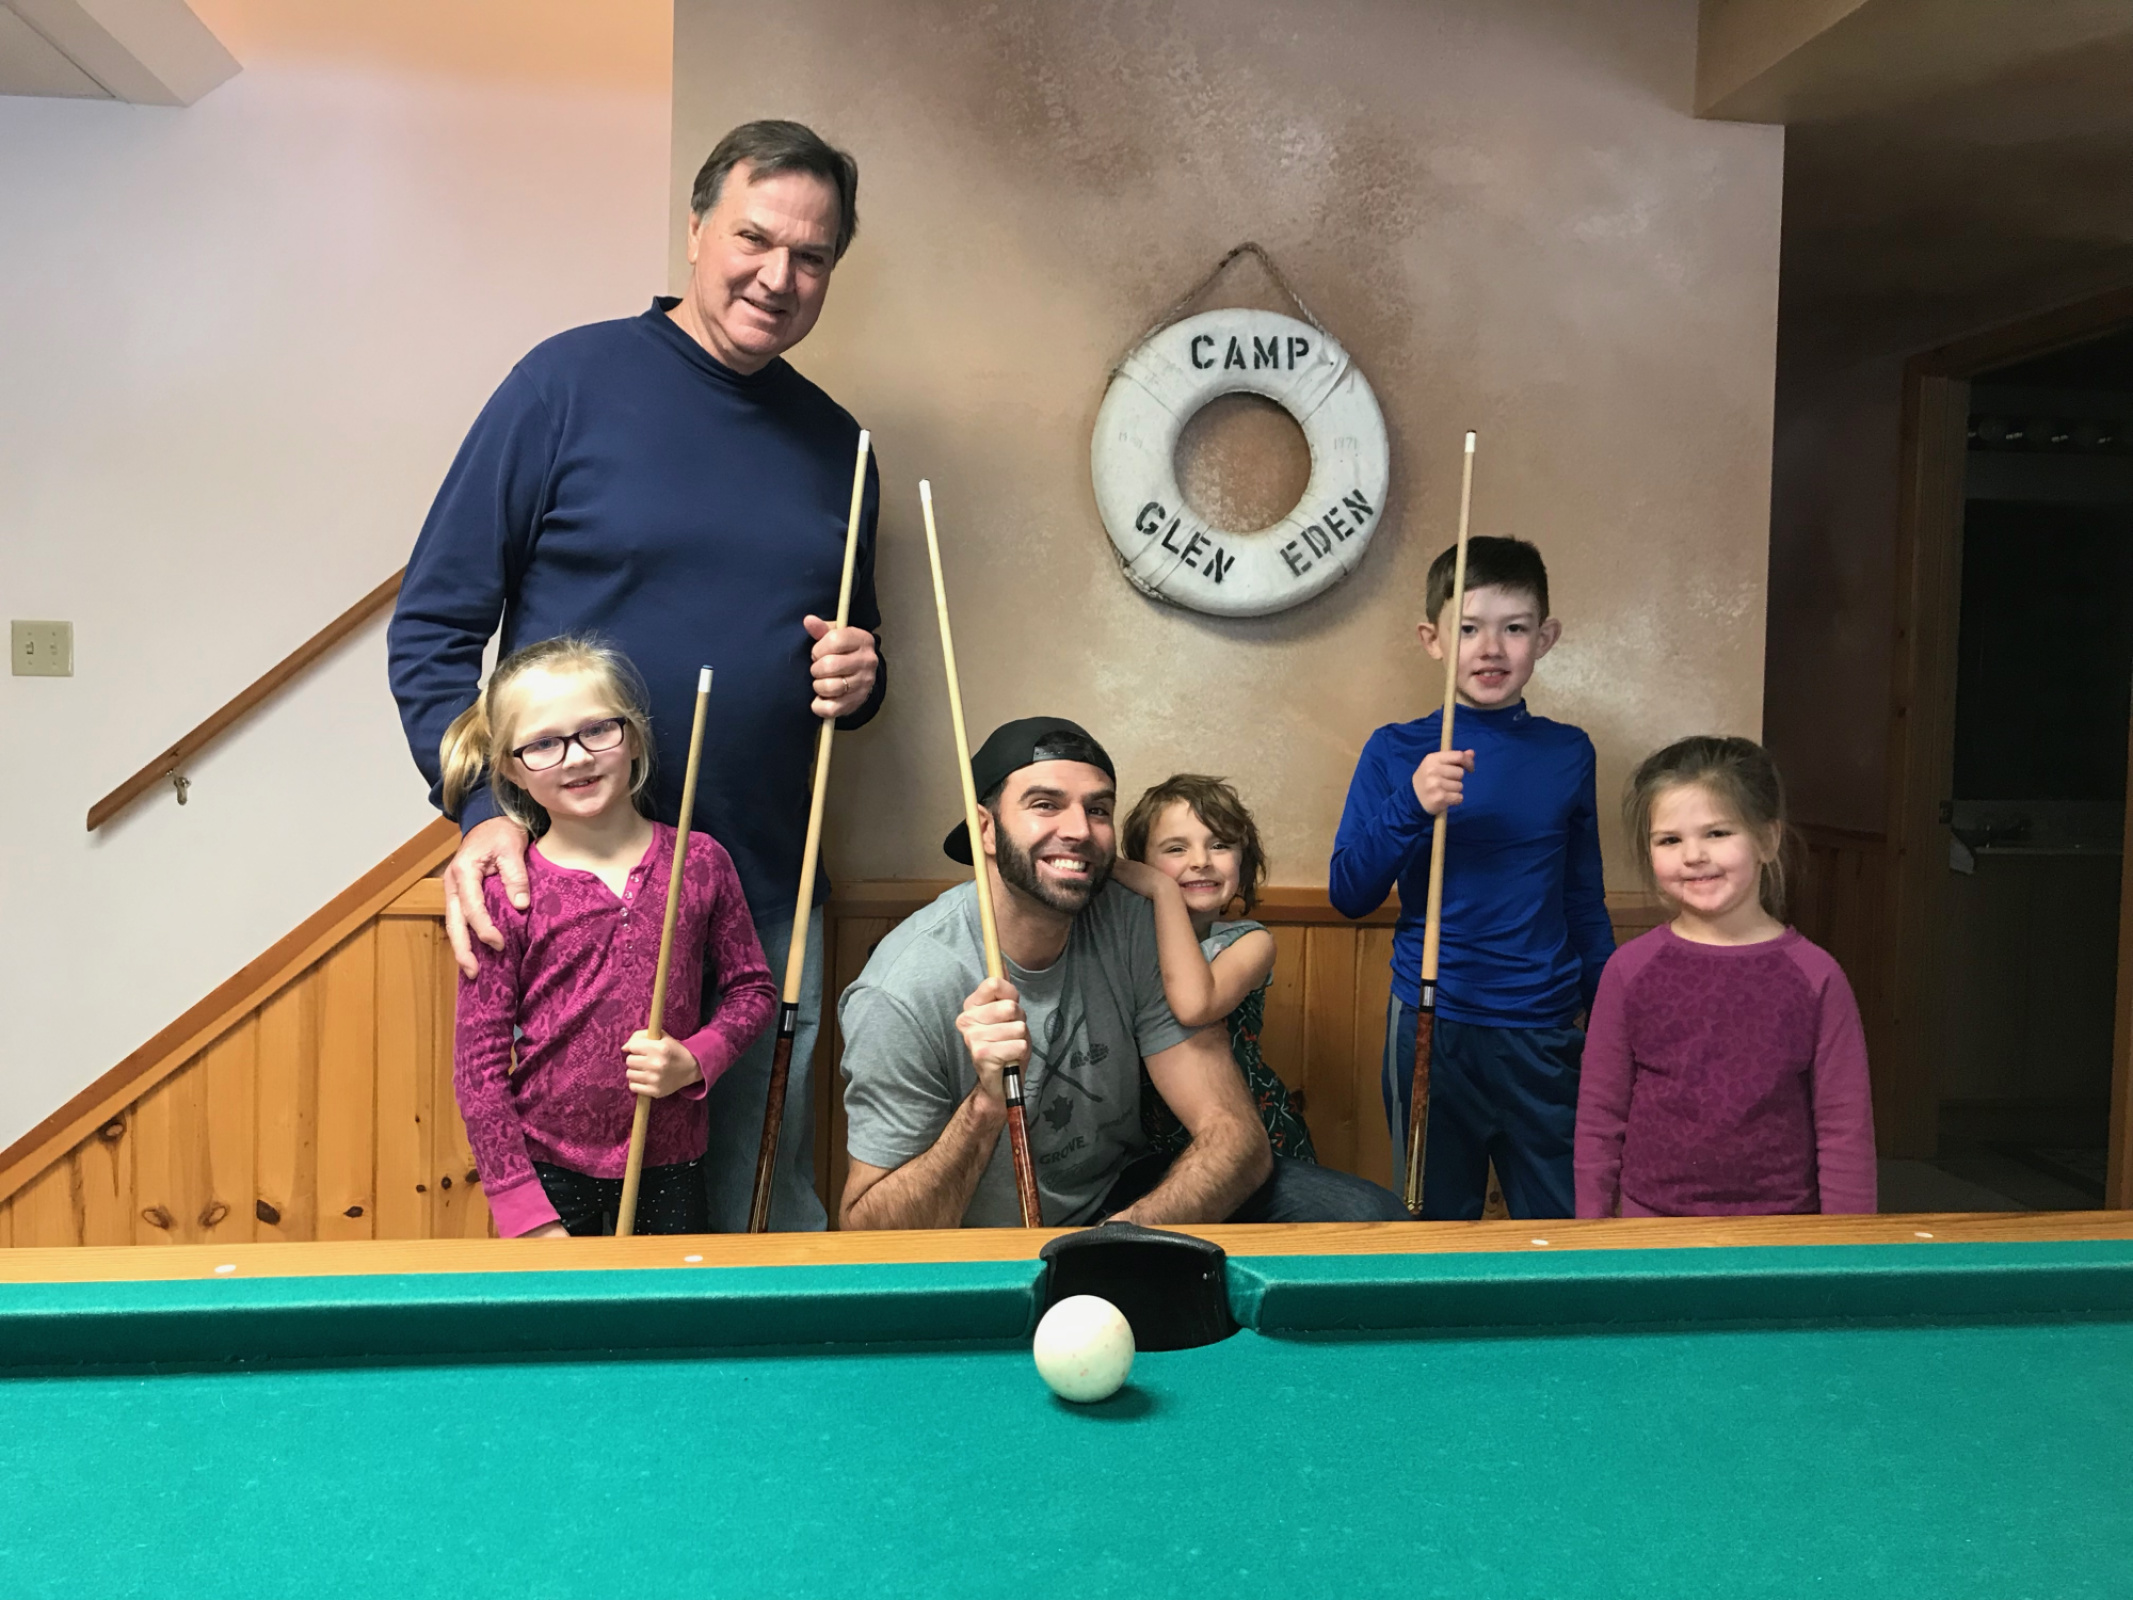 Friendly game of pool with grandkids 2018!